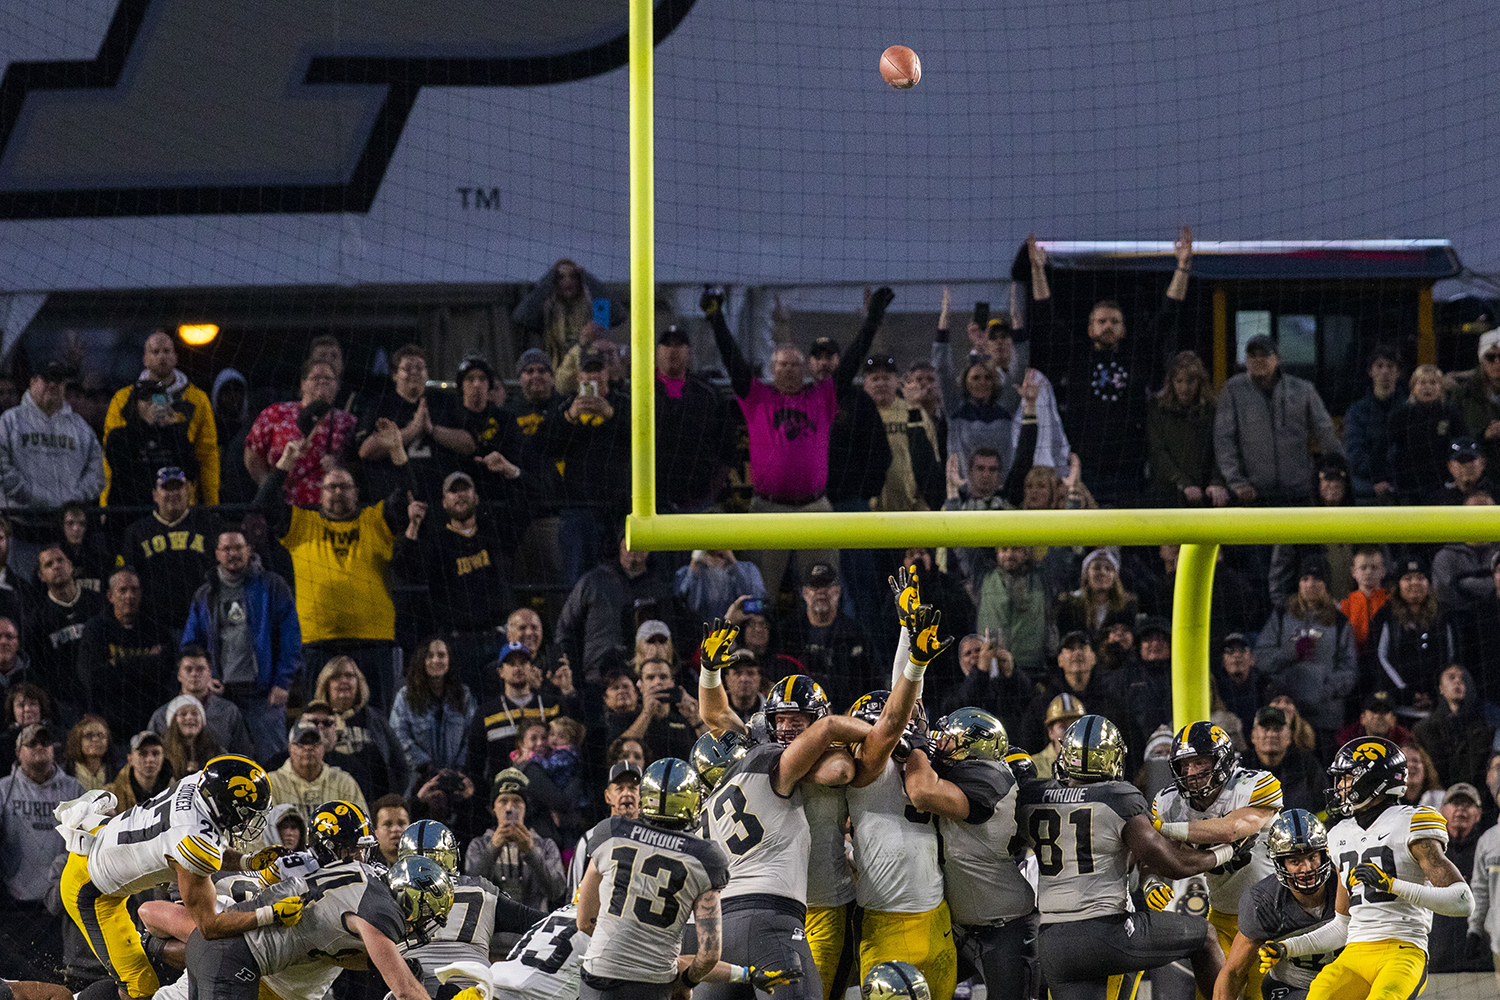 Purdue+kicks+the+game+winning+field+goal+during+the+Iowa%2FPurdue+game+at+Ross-Ade+Stadium+in+West+Lafayette%2C+Ind.+The+Boilermakers+defeated+the+Hawkeyes%2C+38-36.